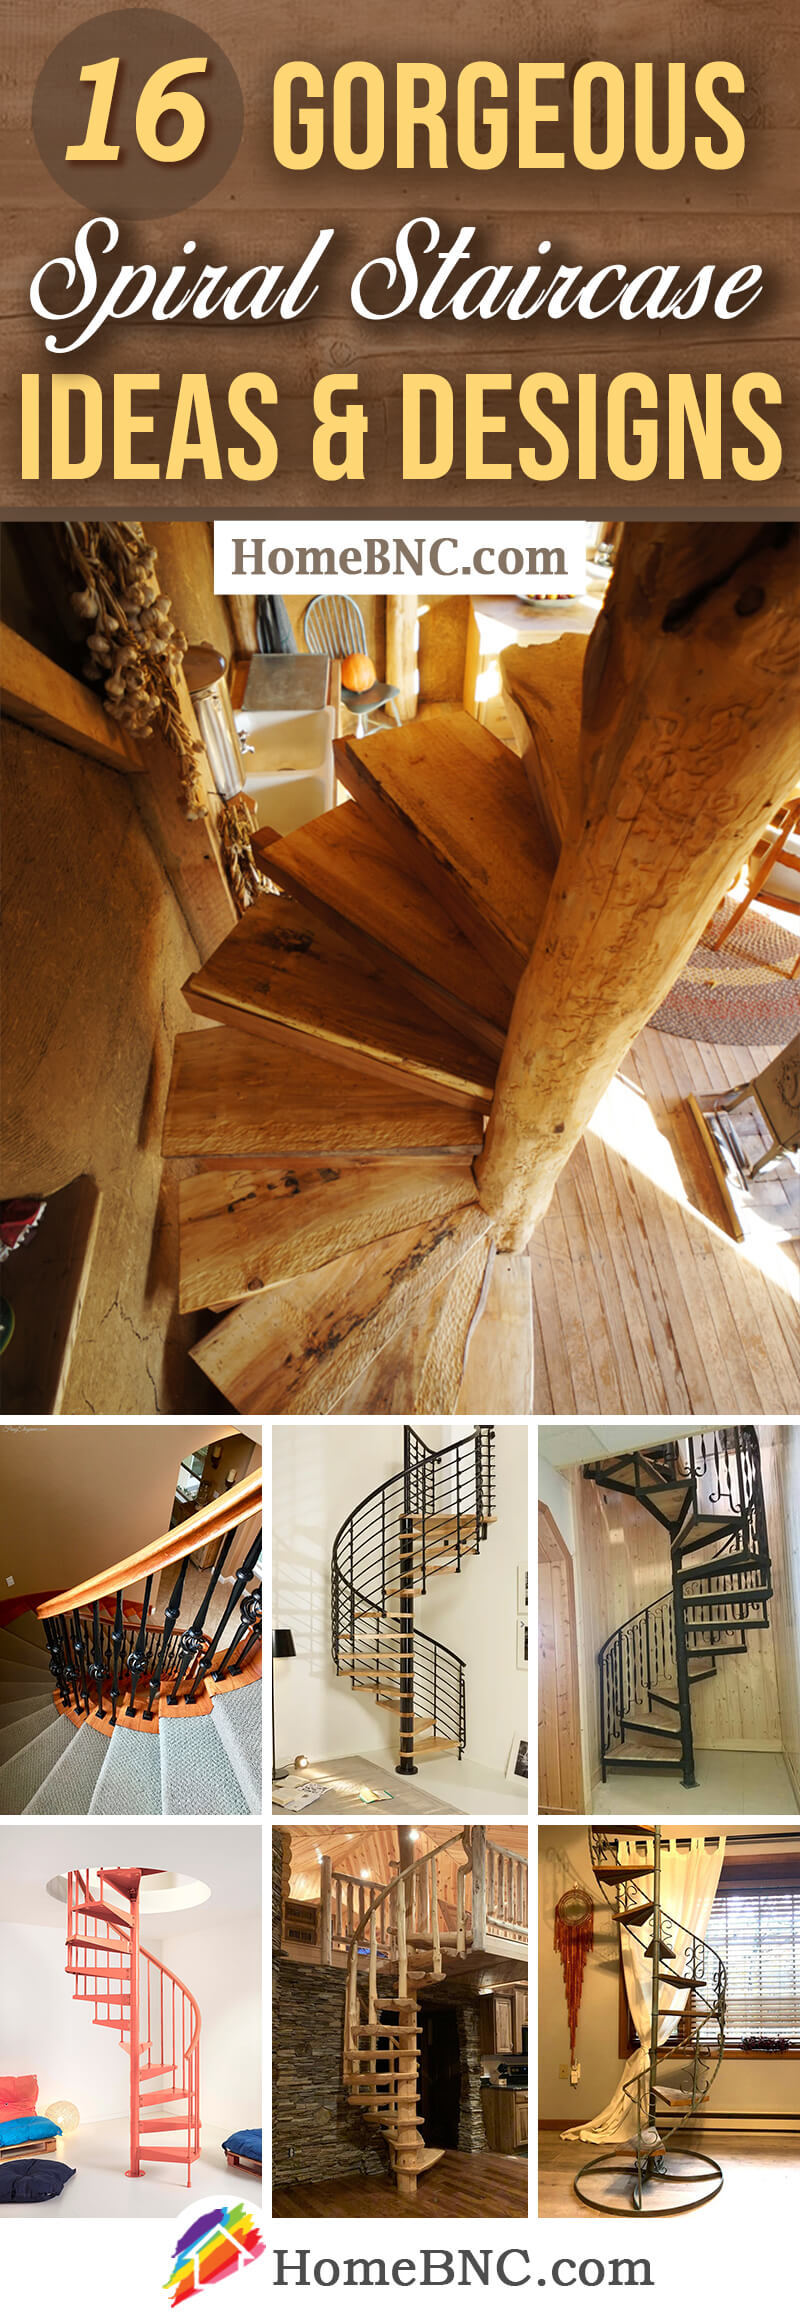 Spiral Staircase Ideas